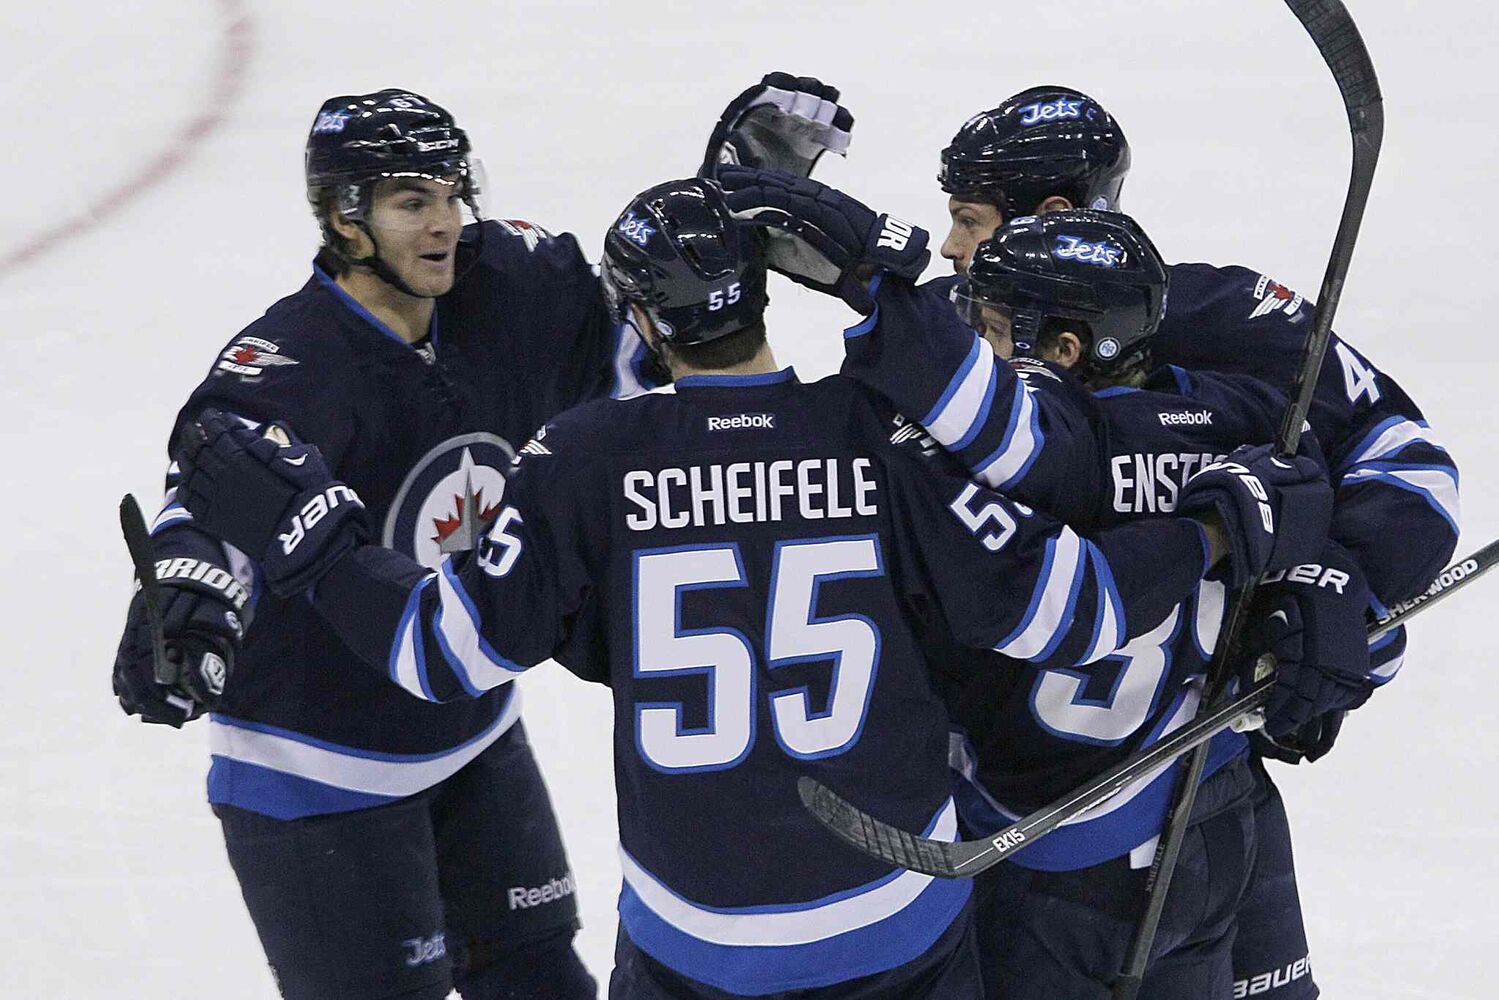 Members of the Winnipeg Jets celebrate a first-period goal by Toby Enstrom (bottom right). The goal would be the Jets' lone marker Saturday afternoon.